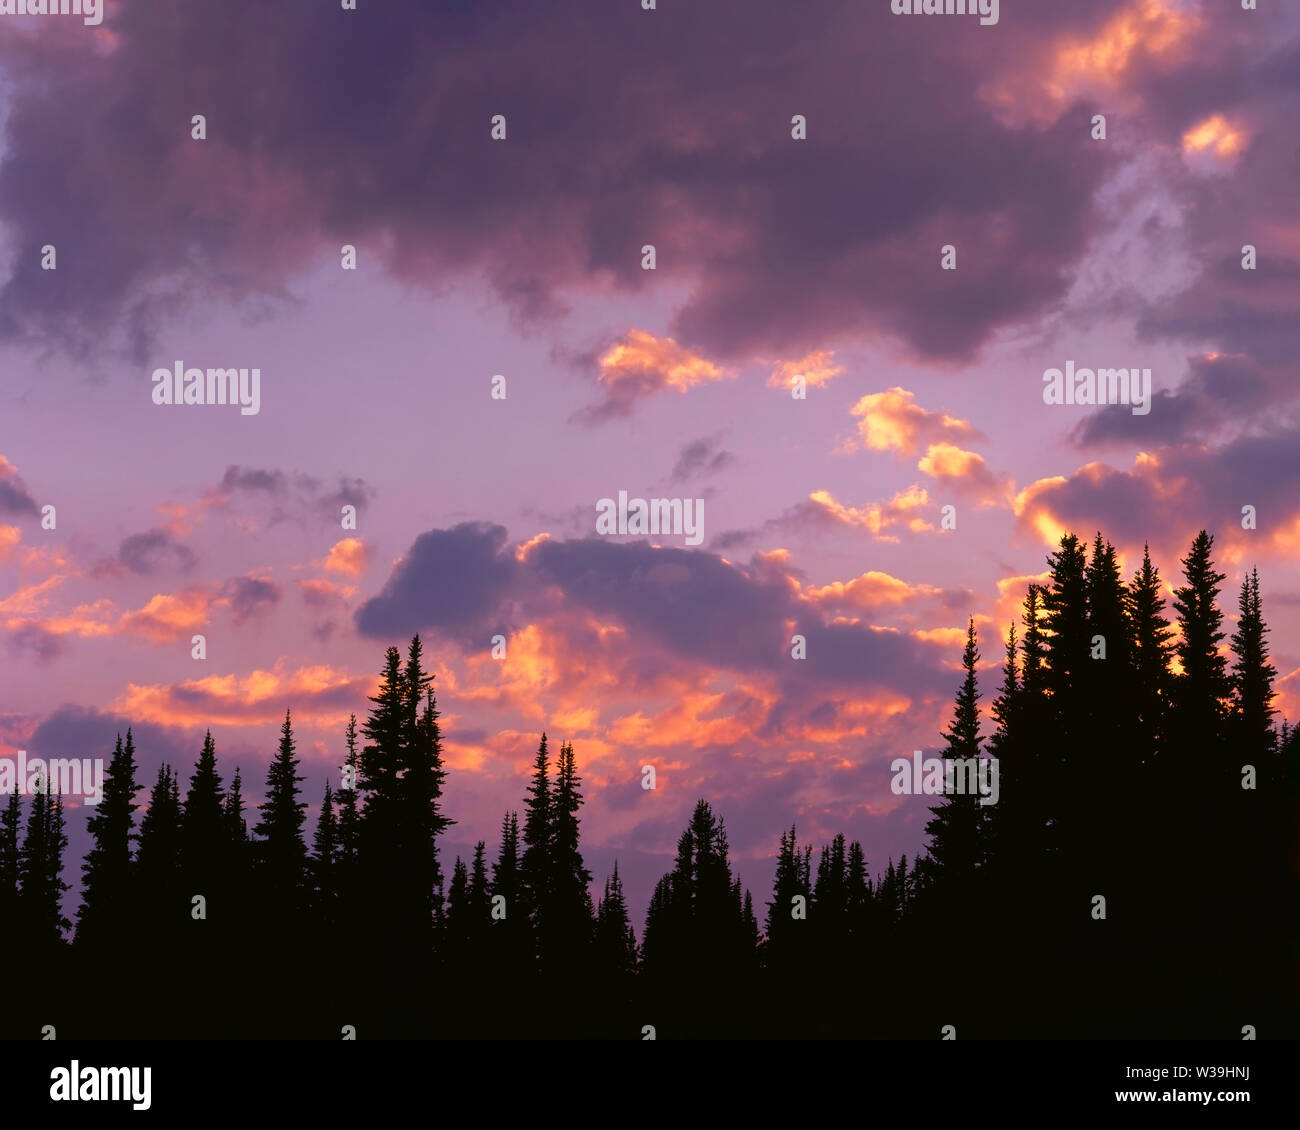 USA, Washington, Mt. Rainier National Park, Sunset adds color to parting clouds and silhouettes subalpine firs; Sunrise area. Stock Photo